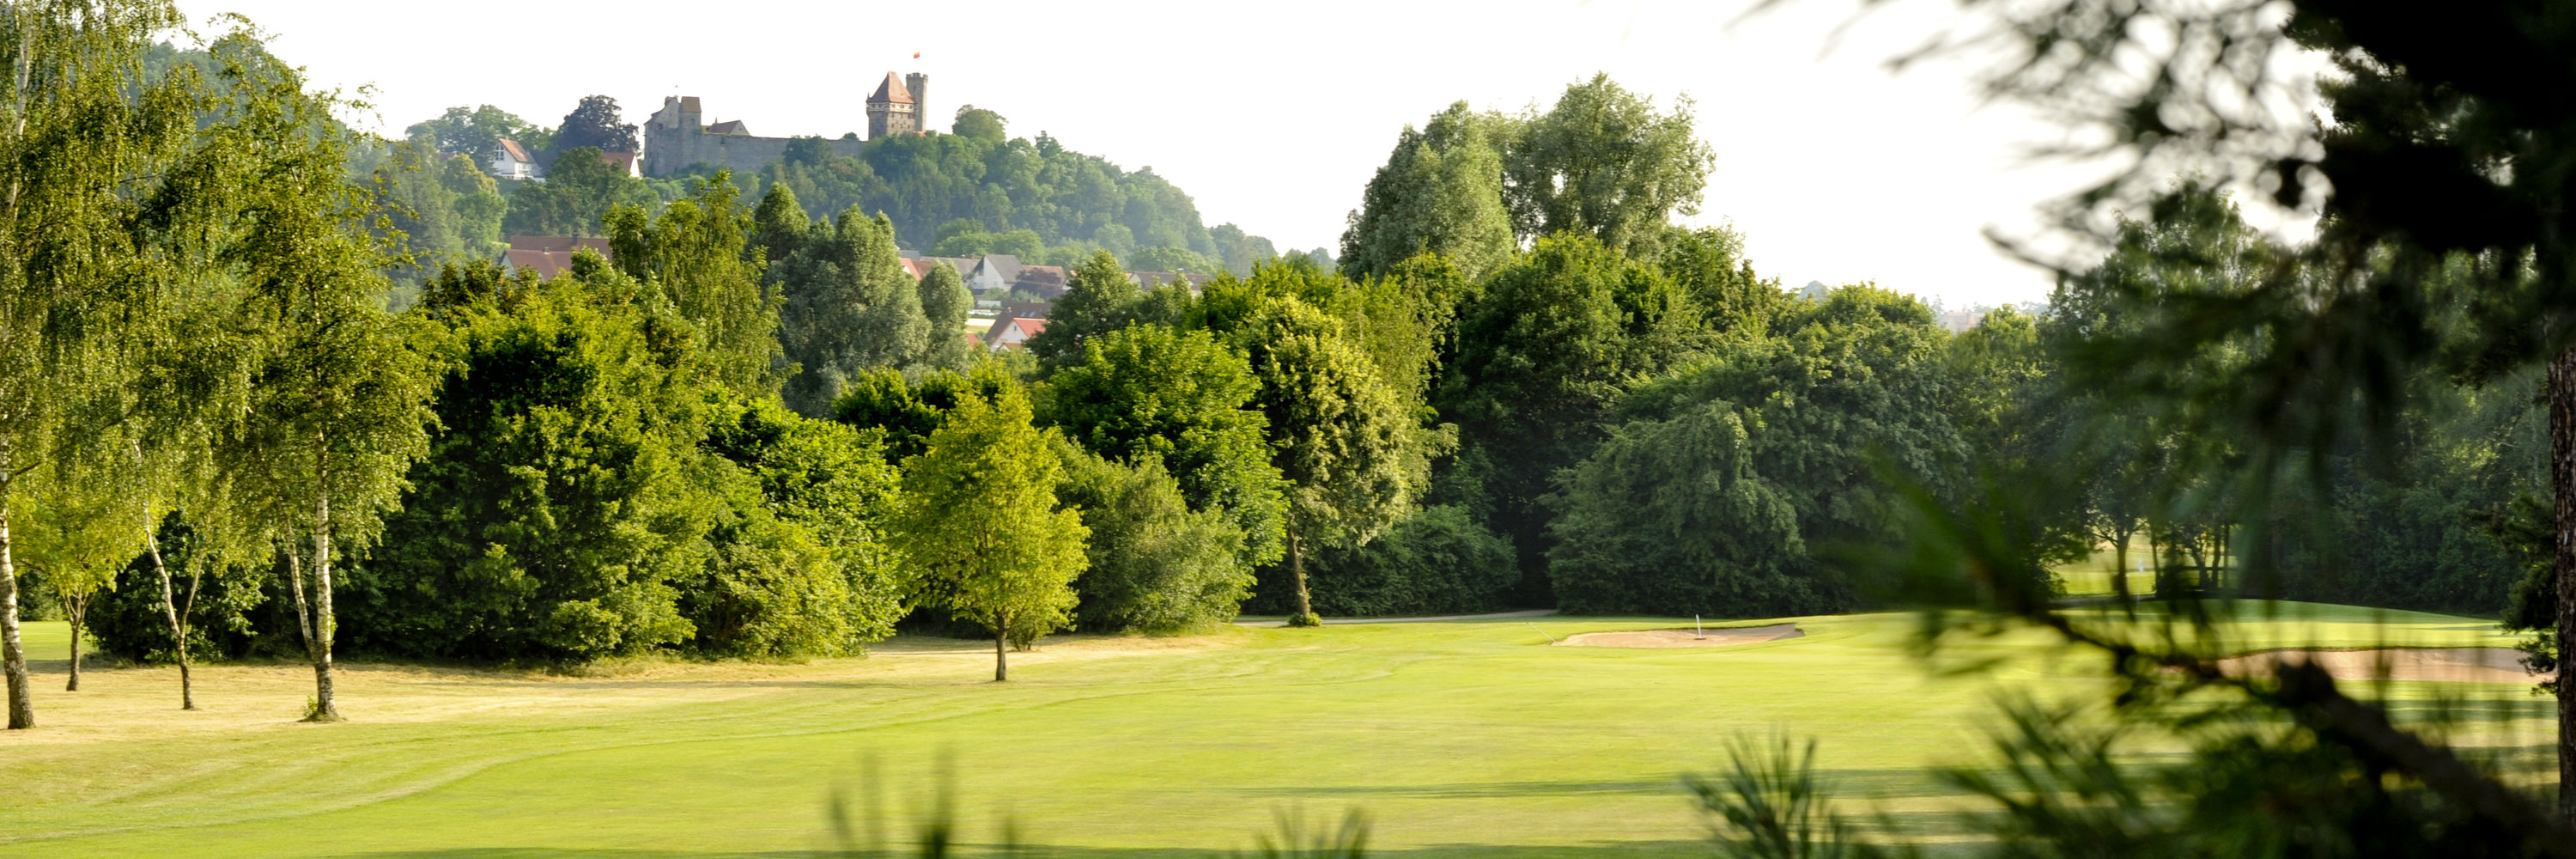 Abenberg golf club cover picture